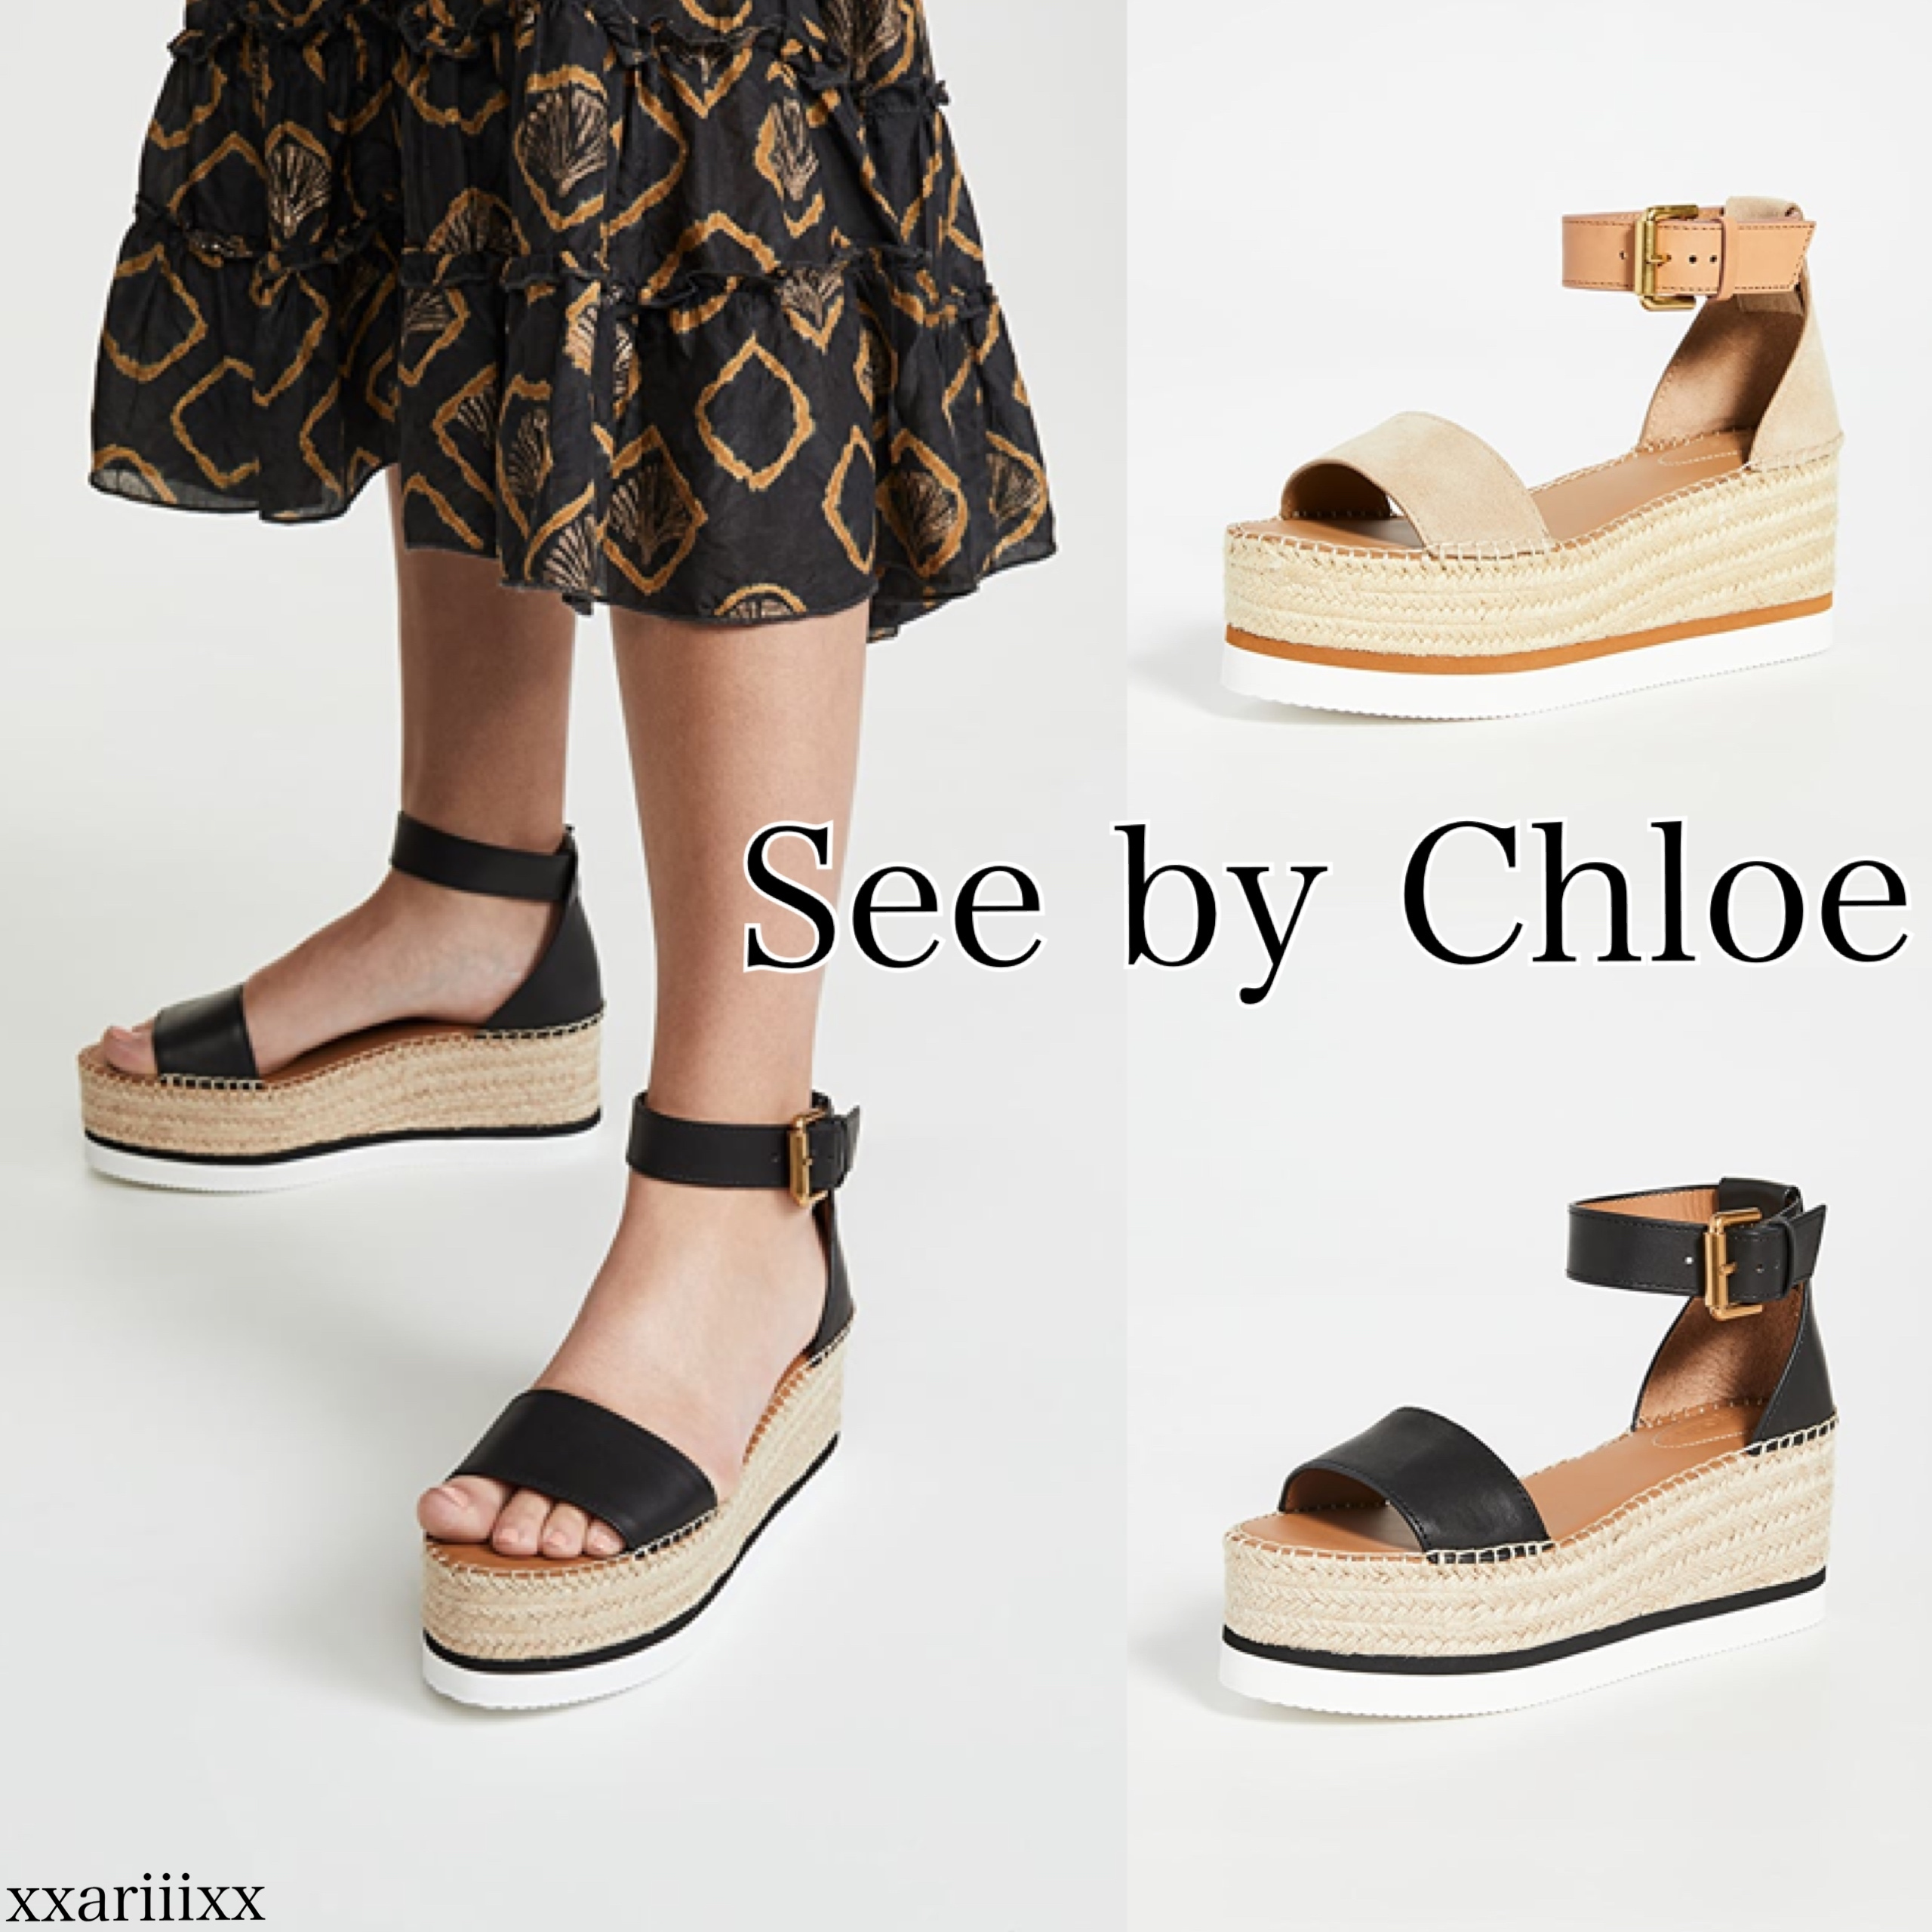 shop stella mccartney see by chloe